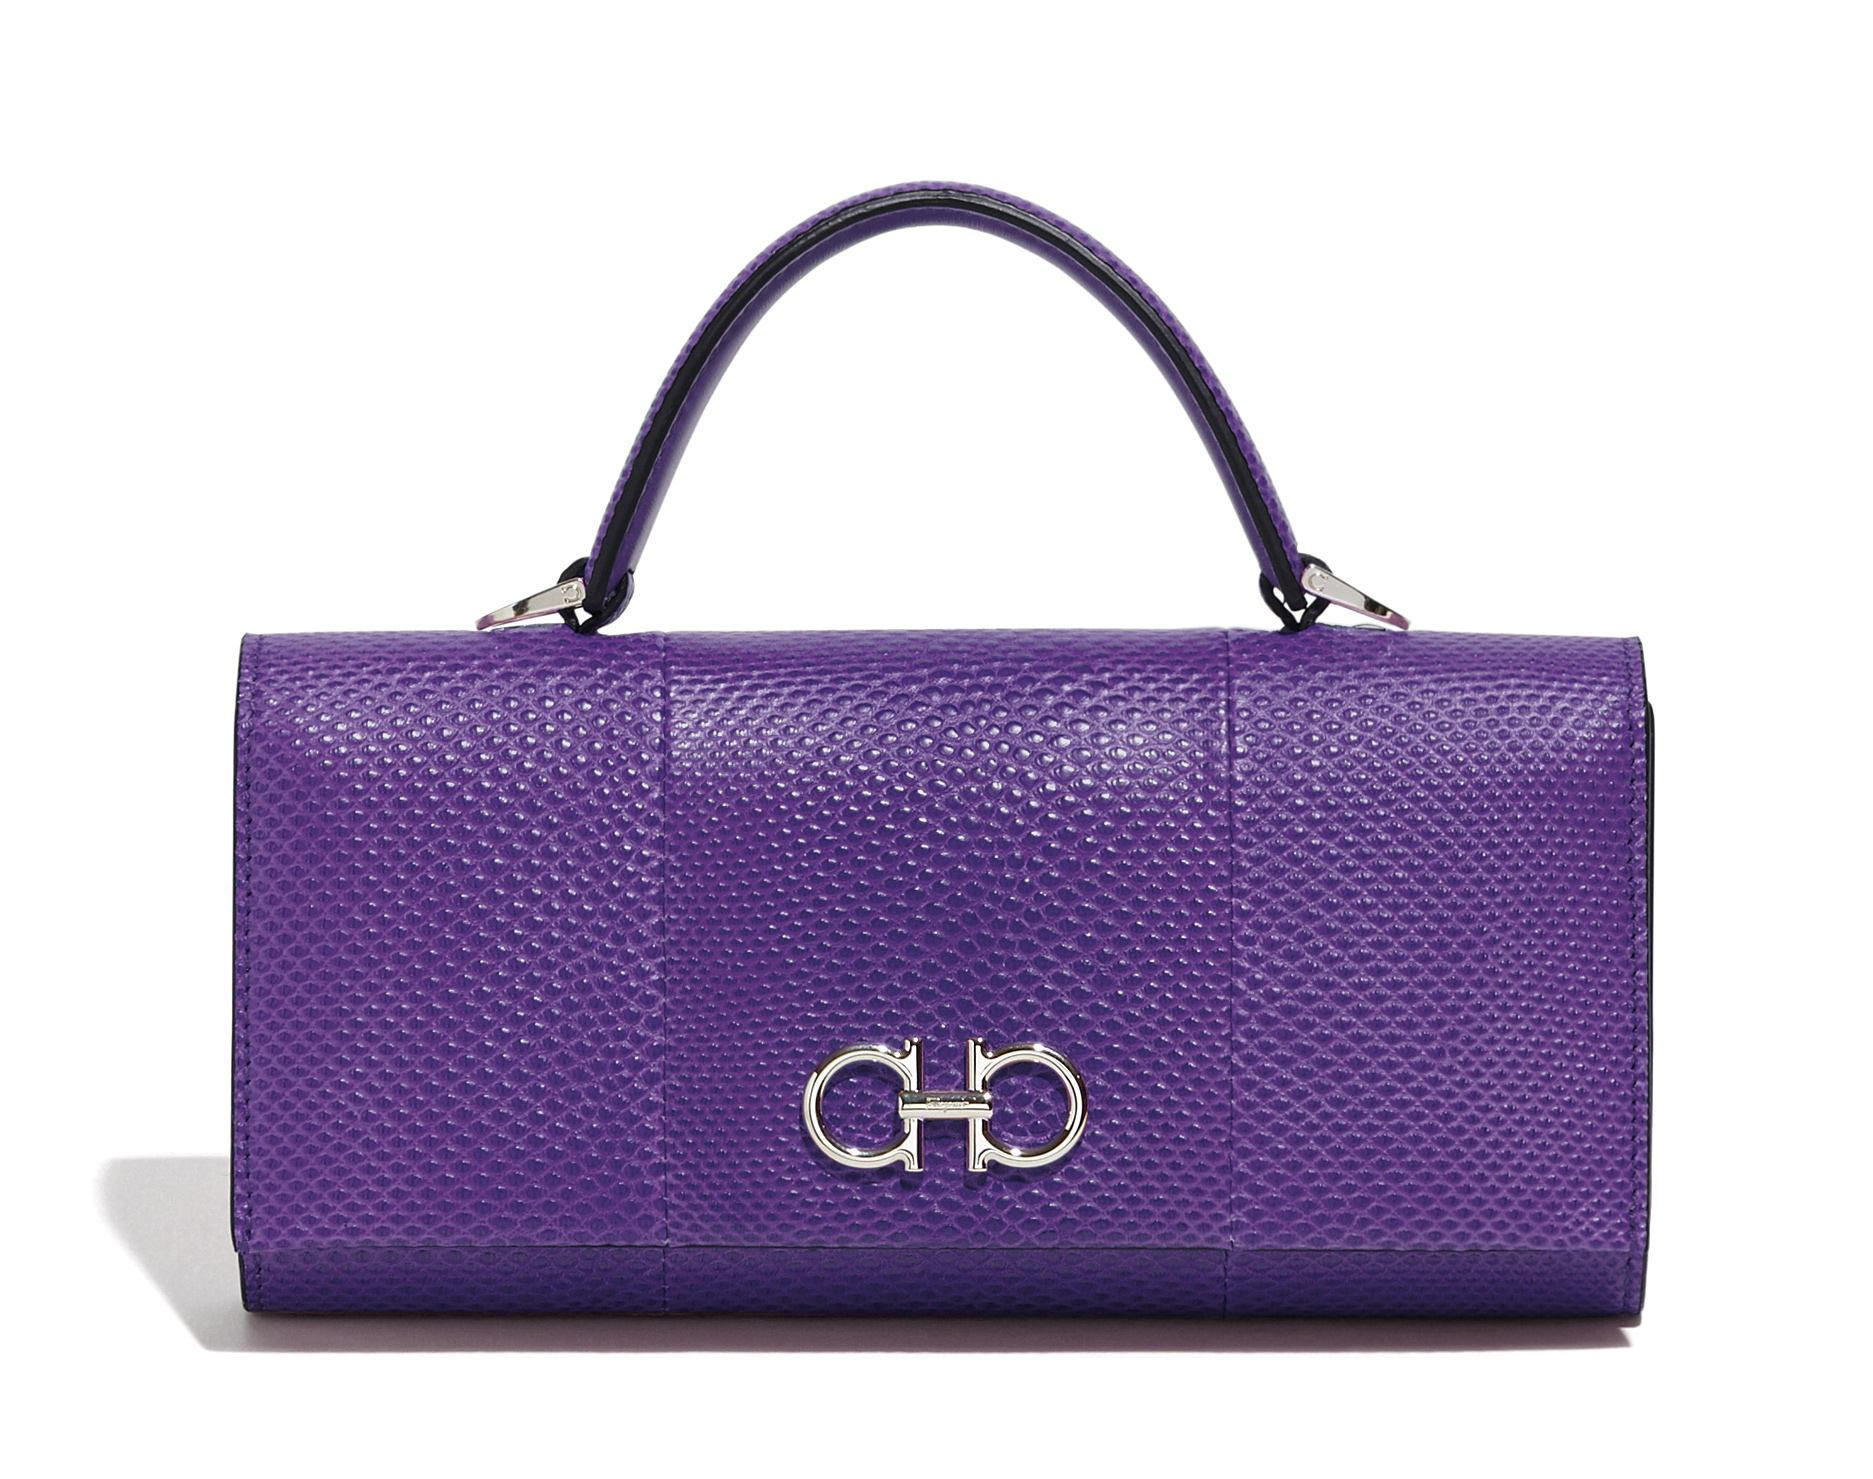 mini shoulder bag by Salvatore Ferragamo in purple